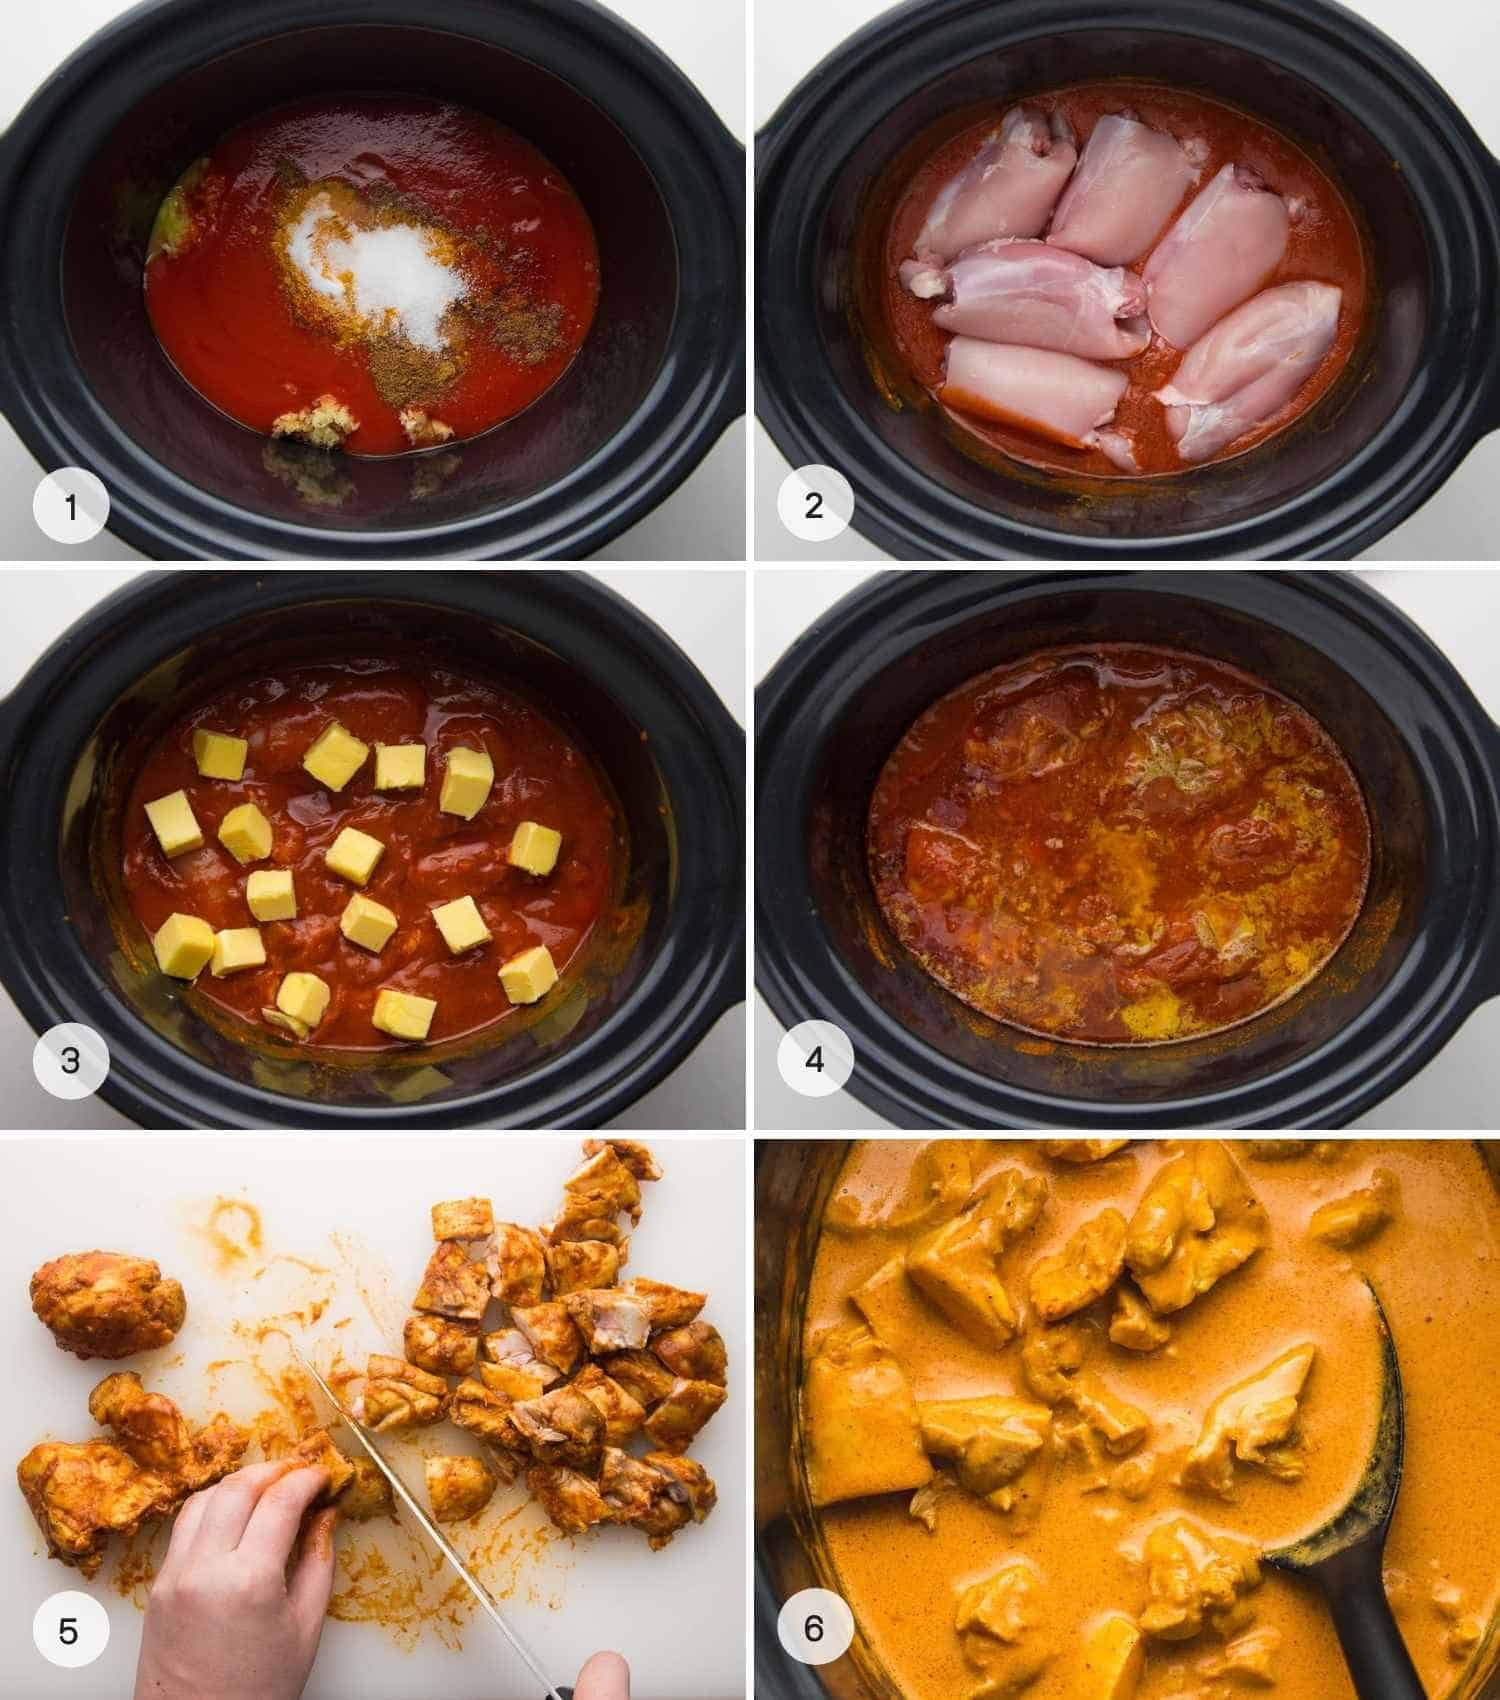 How to make butter chicken in the slow cooker, a collage with 6 images from adding the ingredients to the slow cooker, to cooking, and cutting up the chicken.